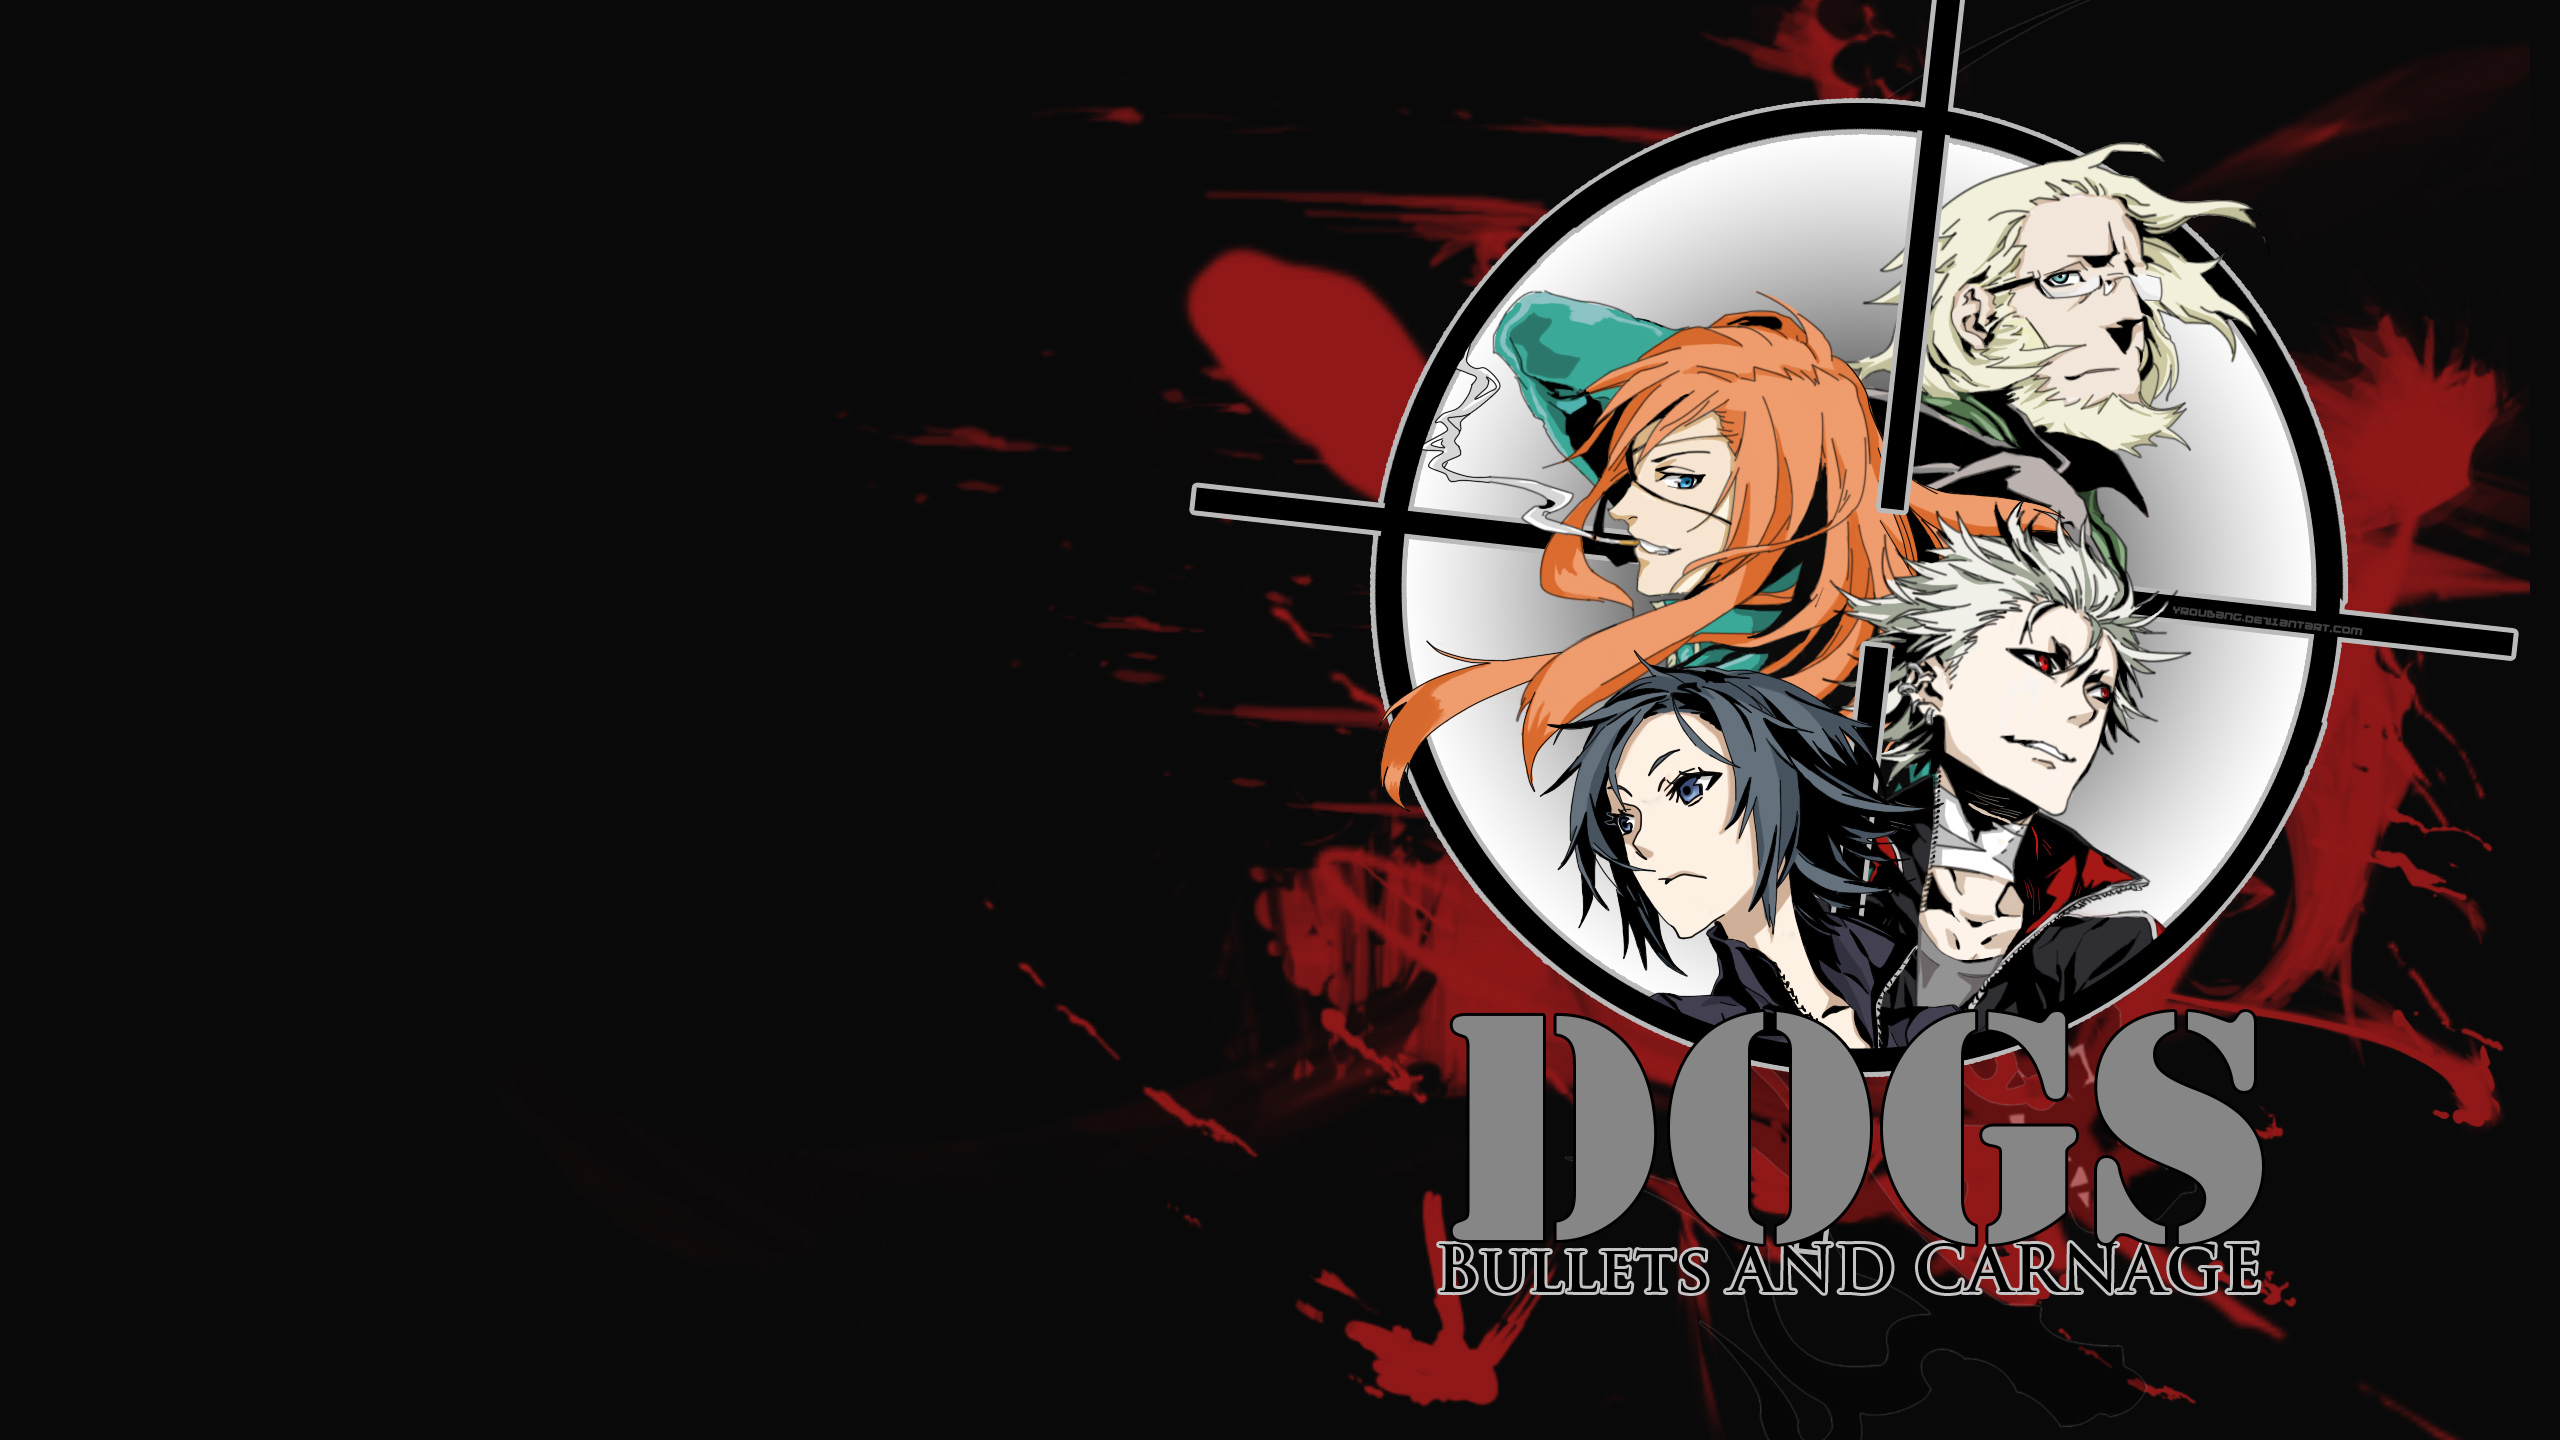 DOGS Bullets Carnage wallpaper 2560x1440 195533 WallpaperUP 2560x1440